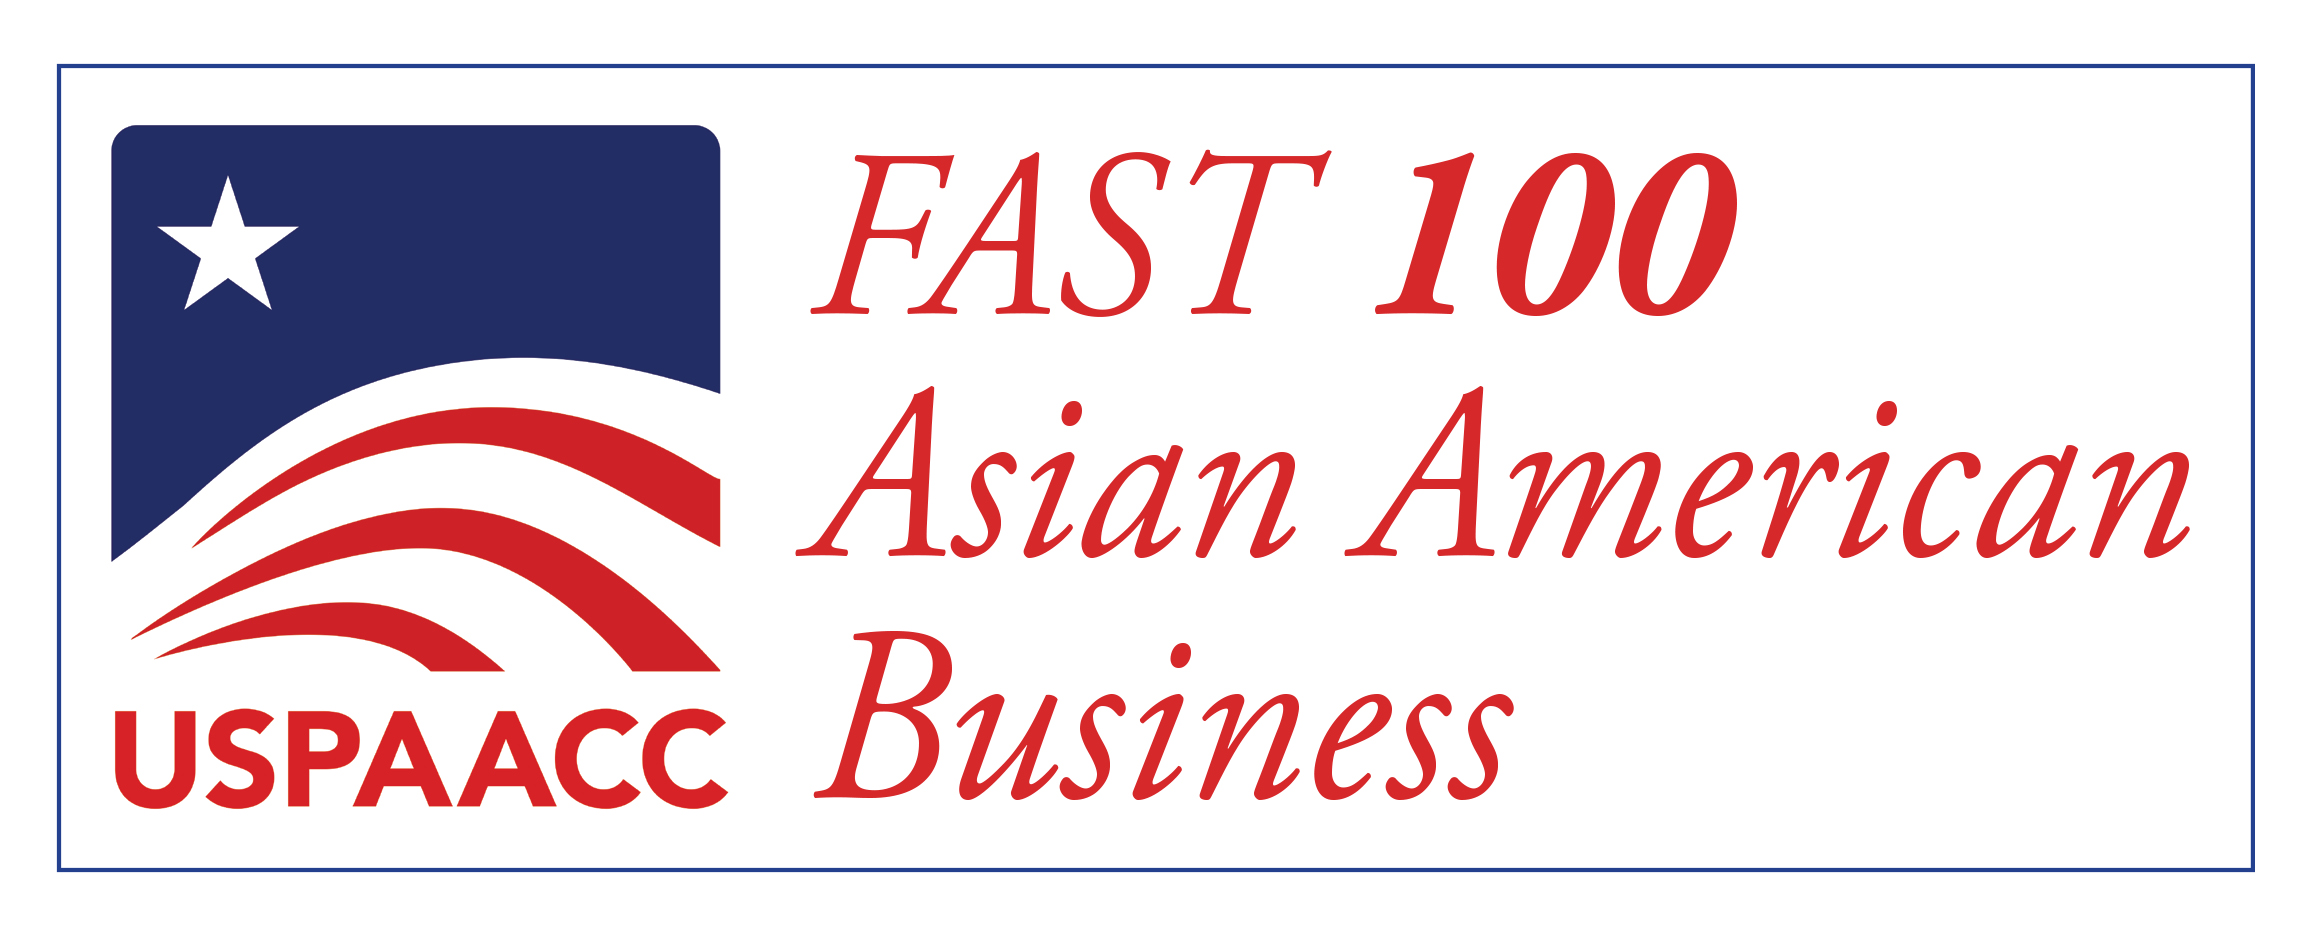 April 21 2017 Paradyme Management Named To Uspaaccs Fast 100